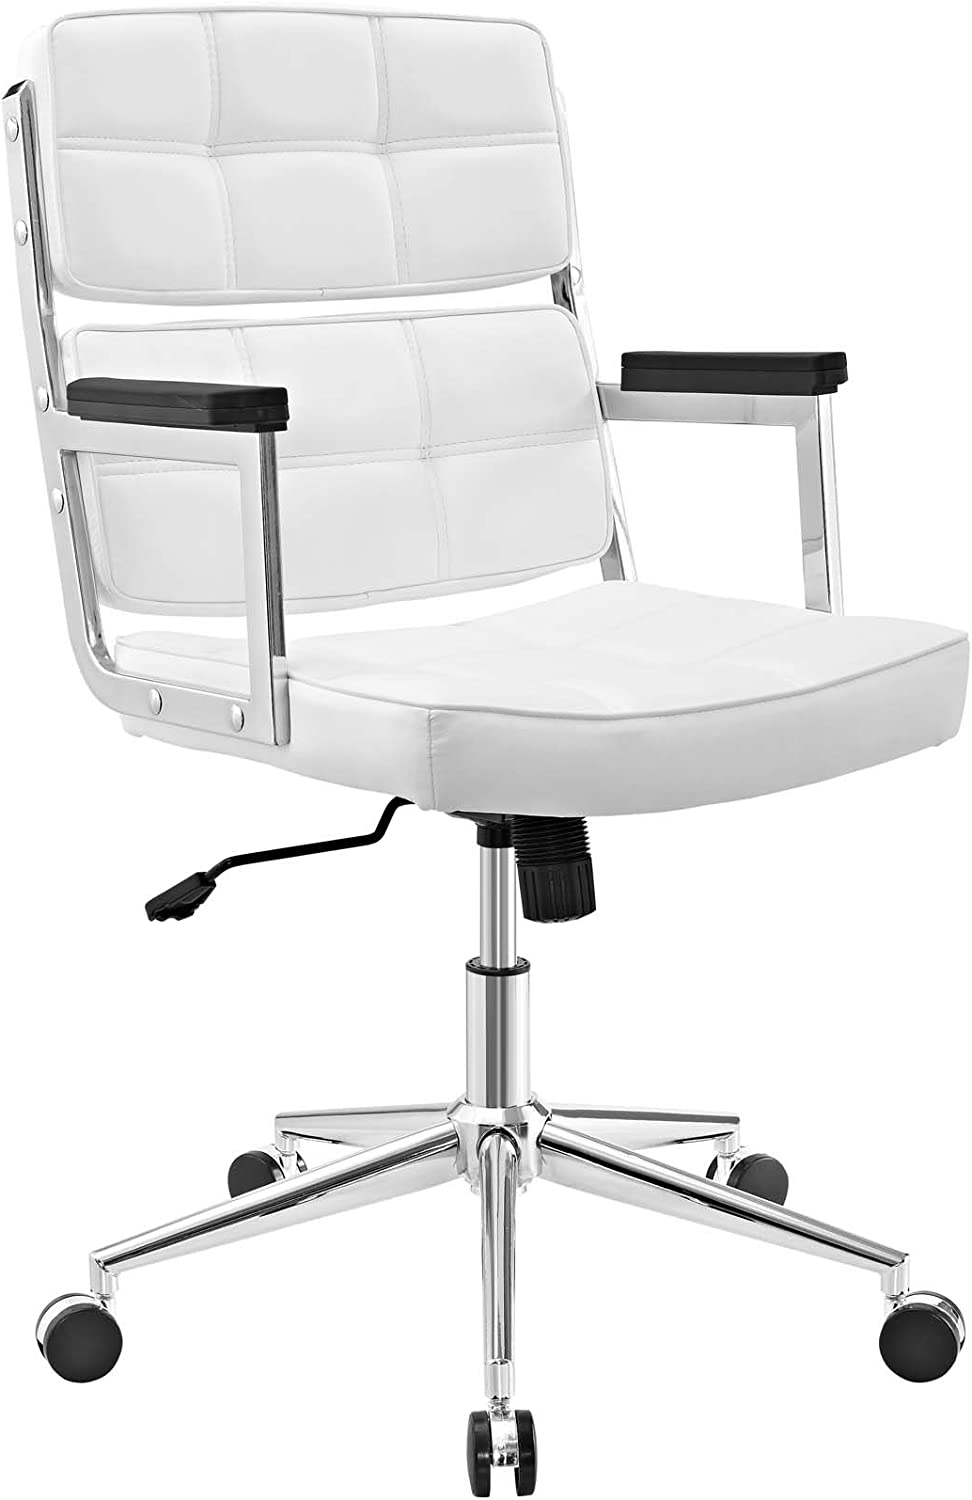 Modway Portray High Back Faux Leather Modern Office Chair In White